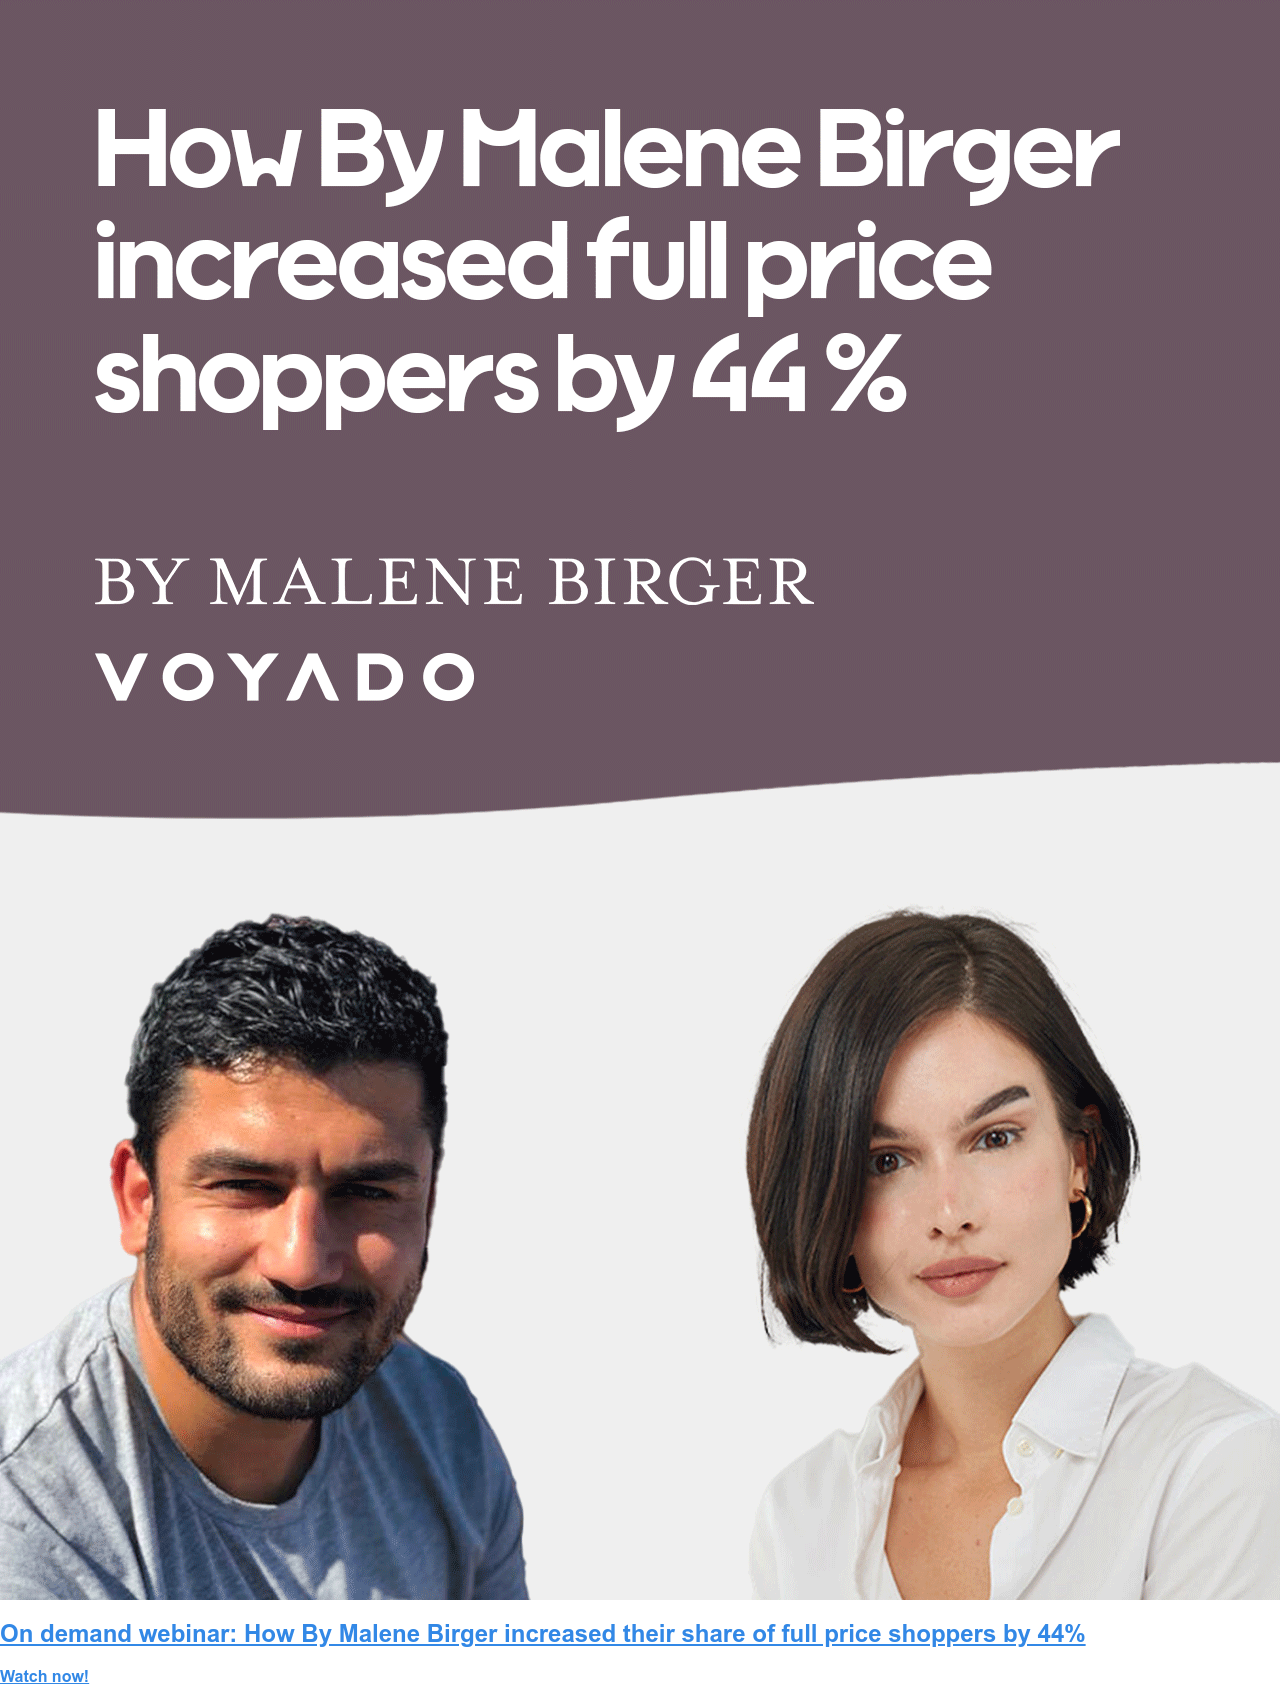 Webinar  How By Malene Birger increased their share of full price shoppers by 44% Sign up to the webinar